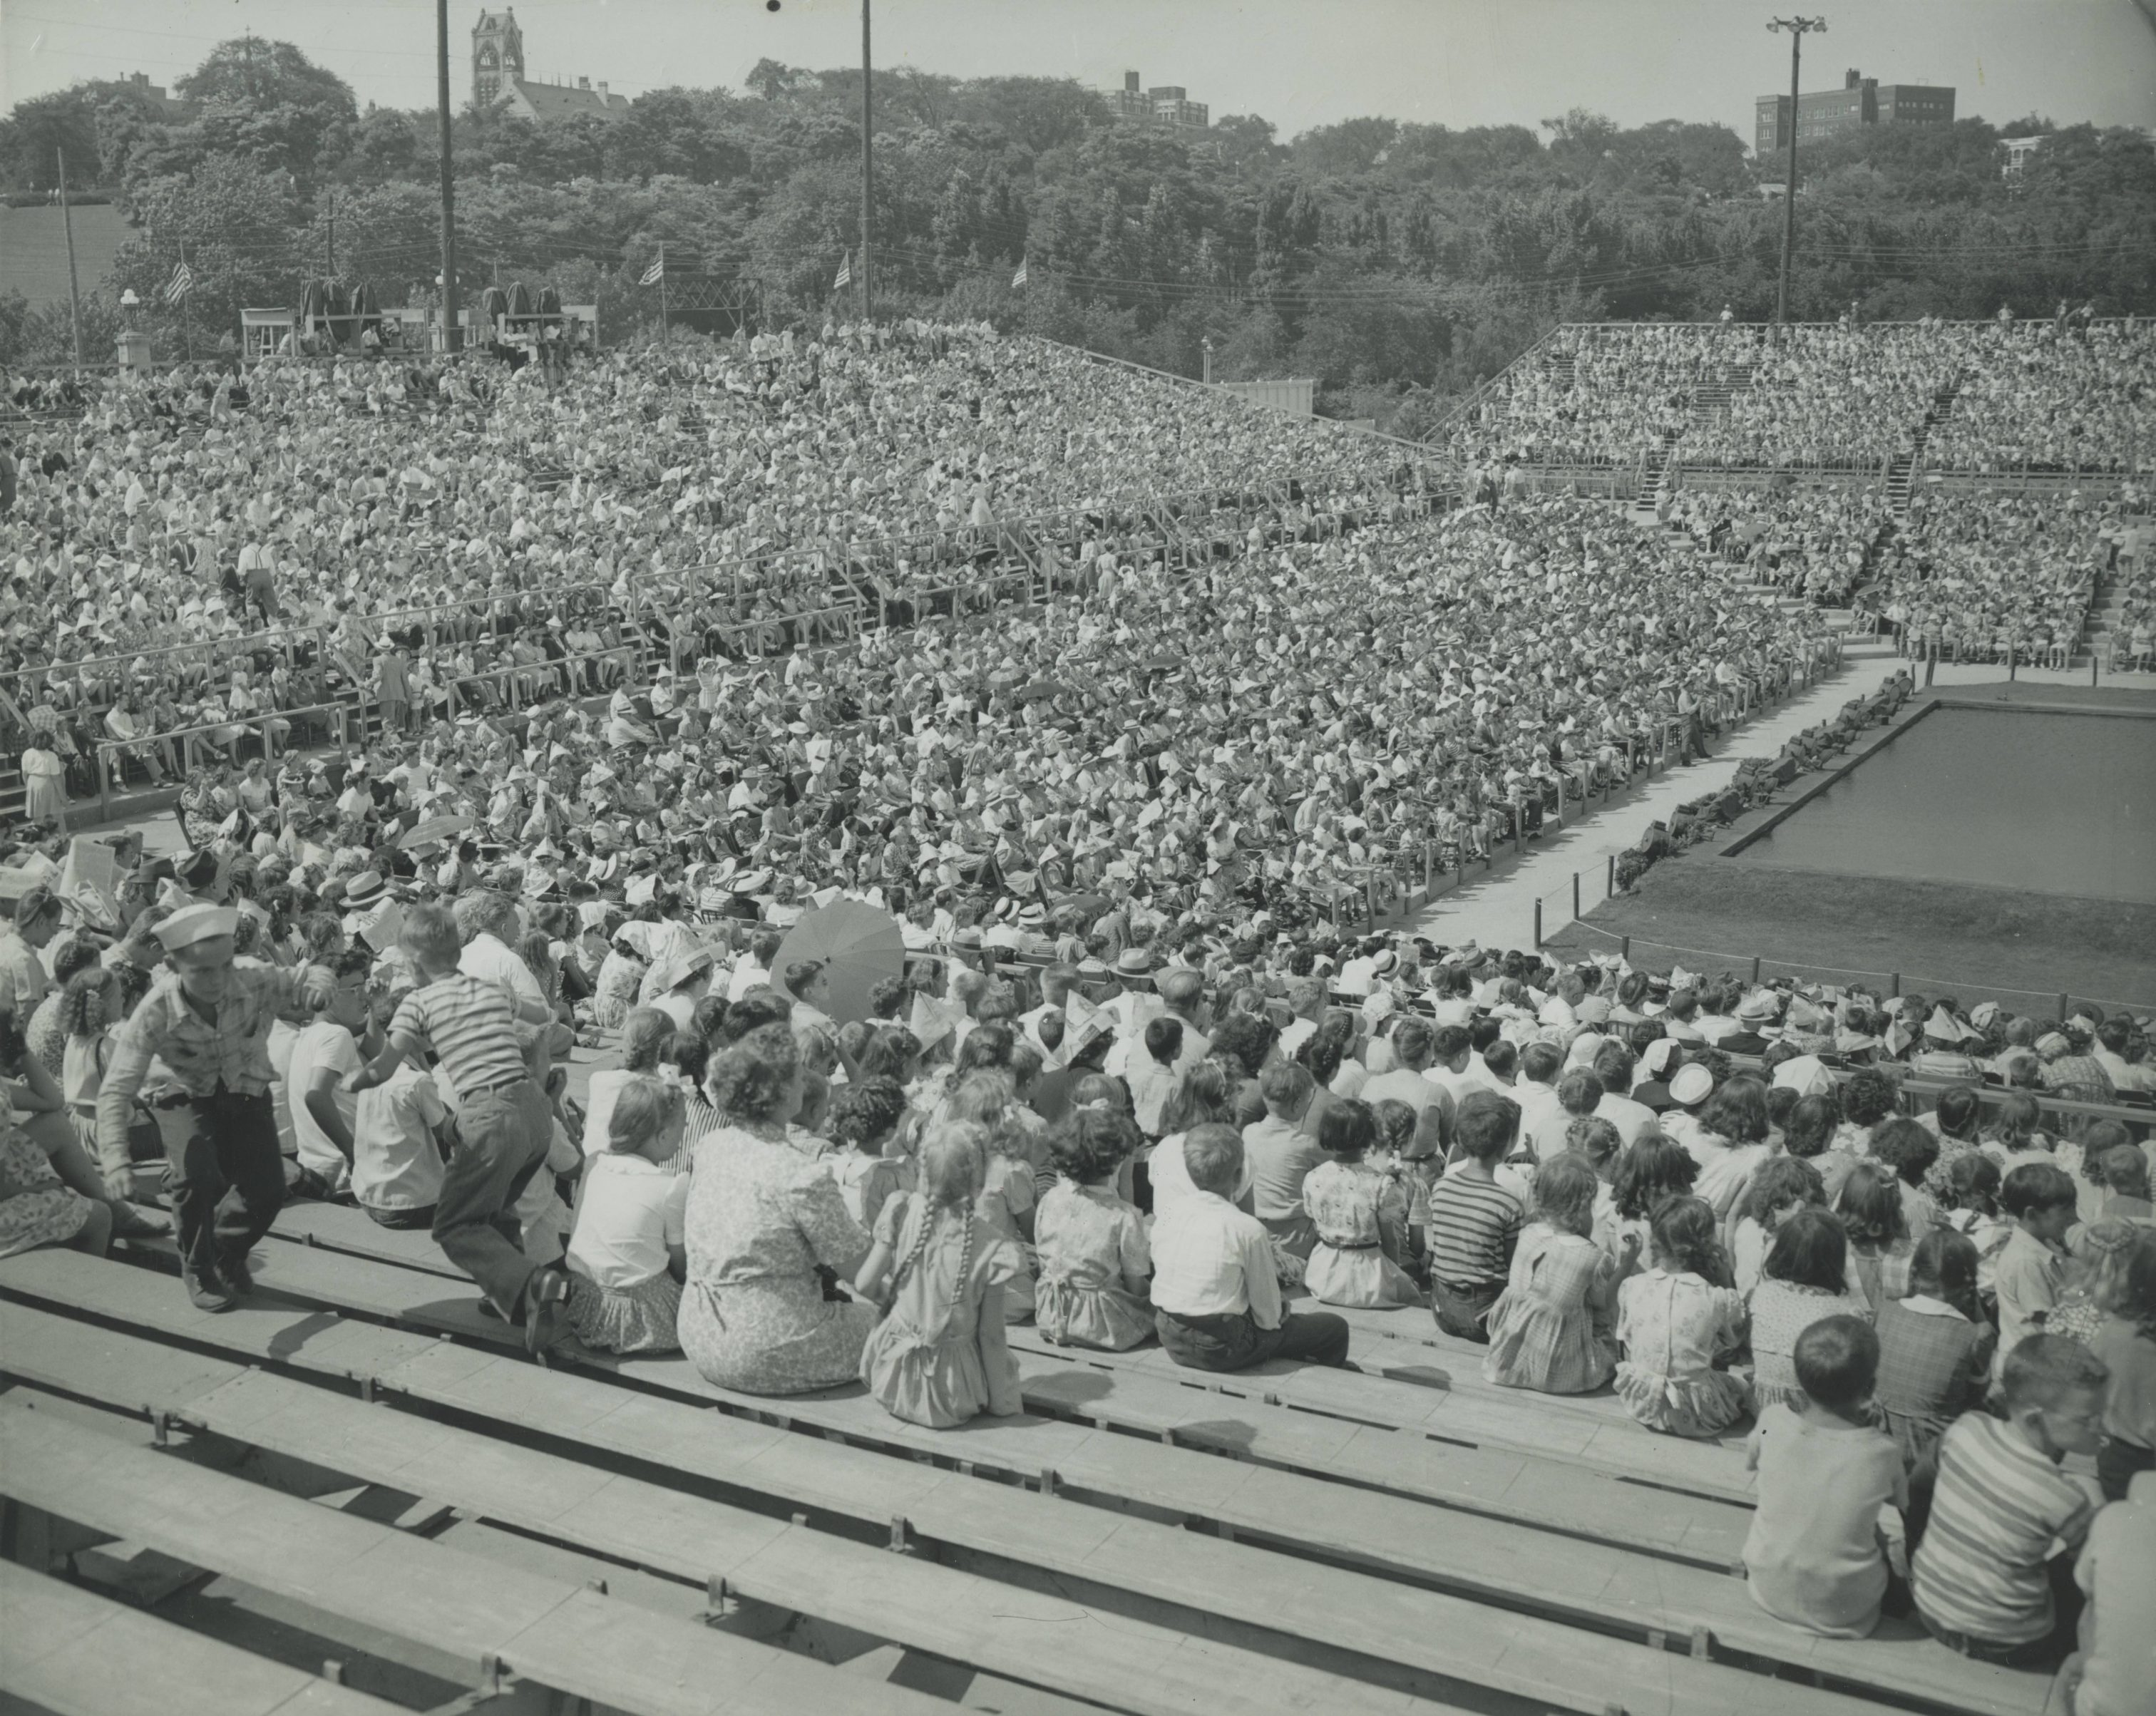 A large crowd of people fills bleachers to celebrate Milwaukee's 100th birthday. Centurama activities lasted an entire month.